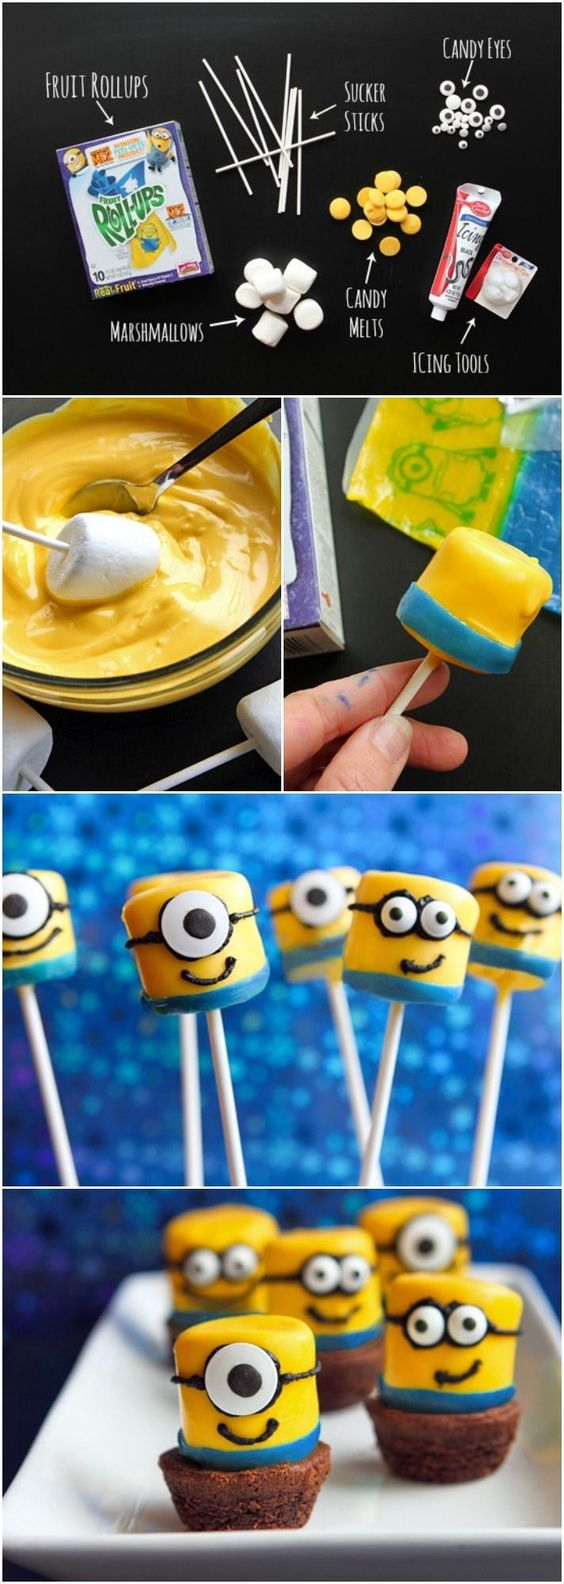 Dispicable Me Minions Cupcakes diy party ideas for kids